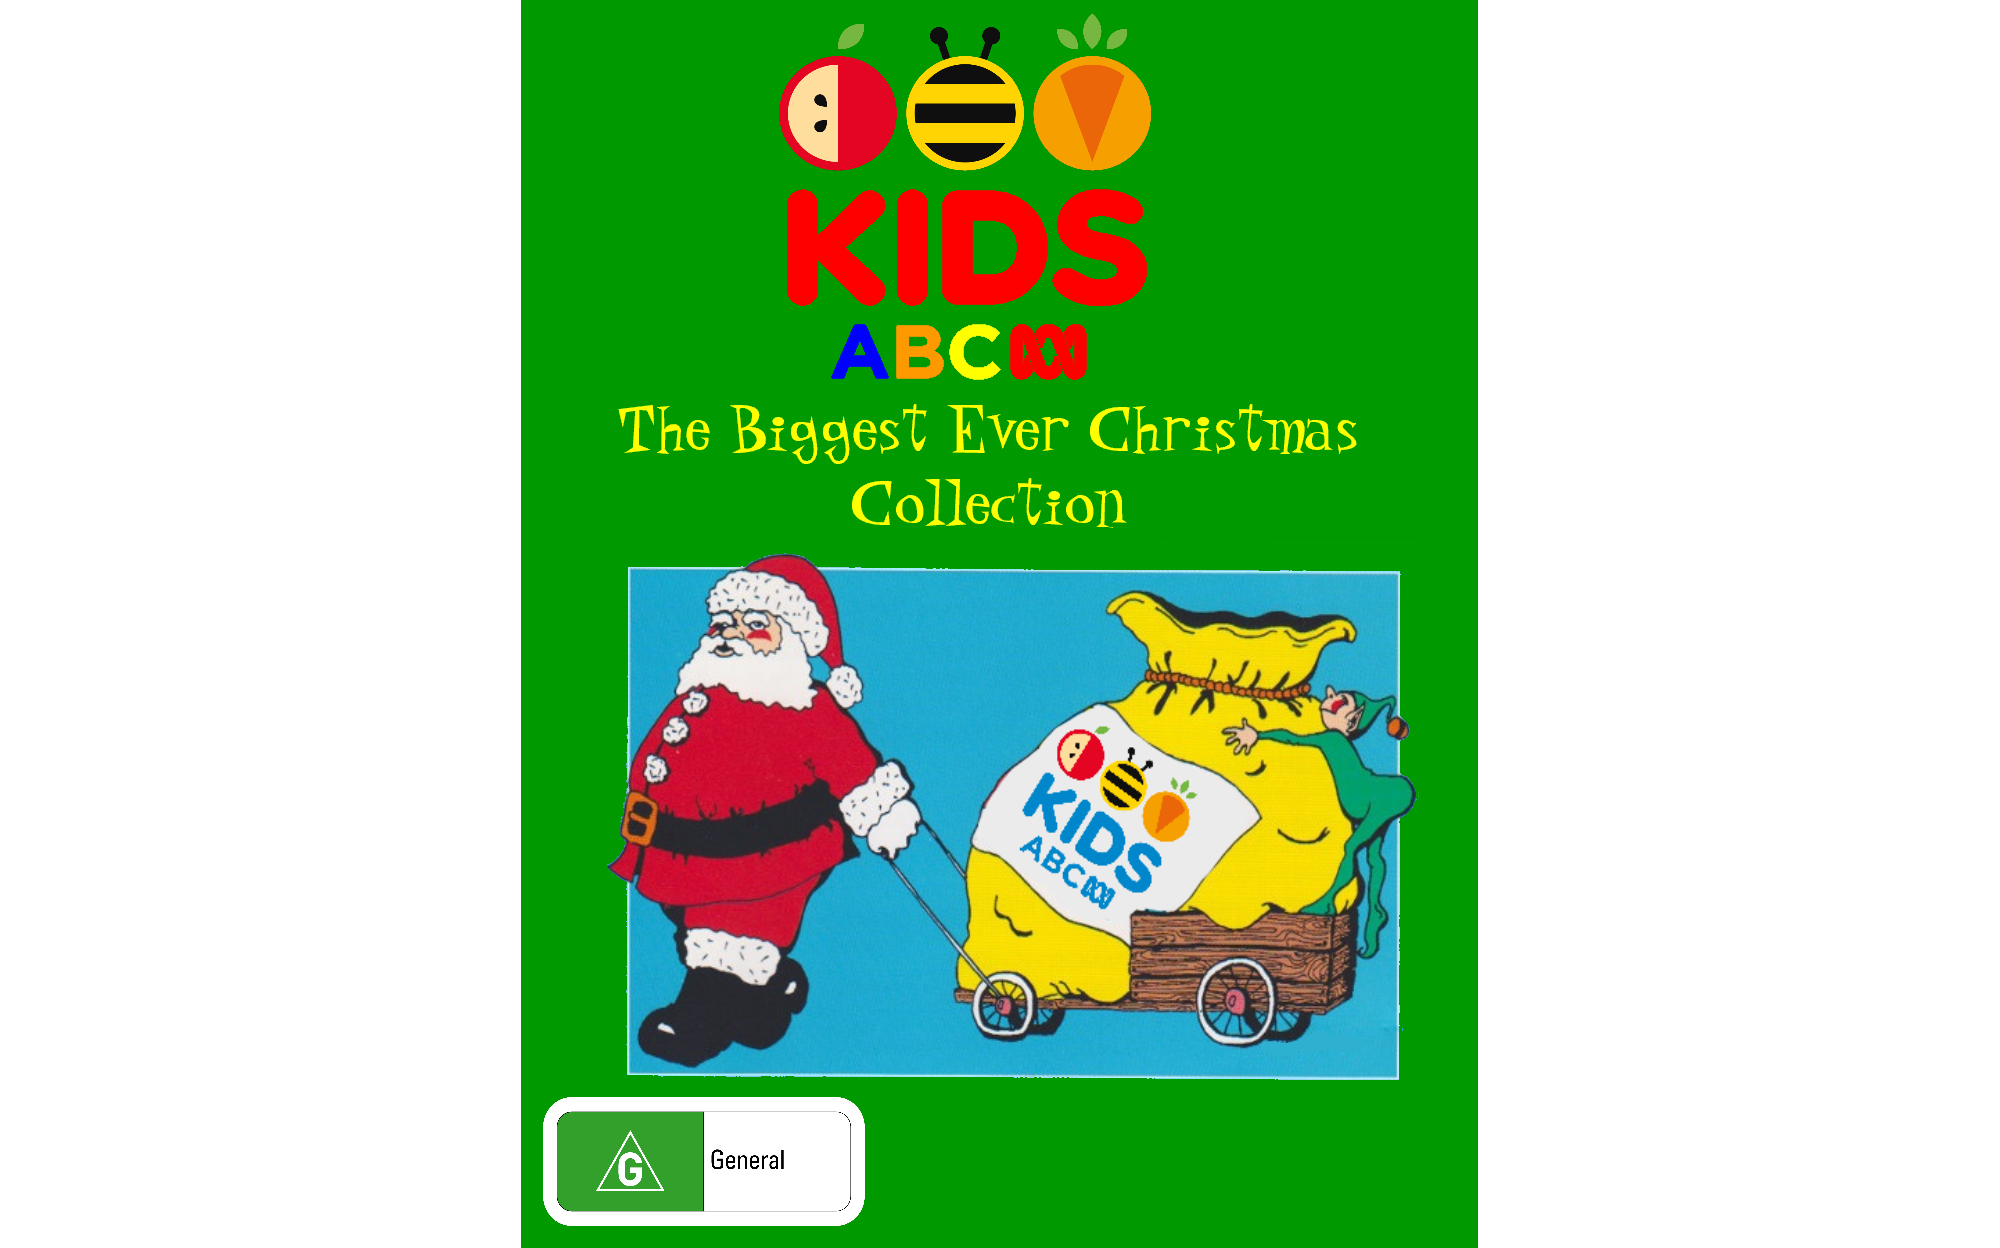 ABC For Kids - The Biggest Ever Christmas Collection (video)